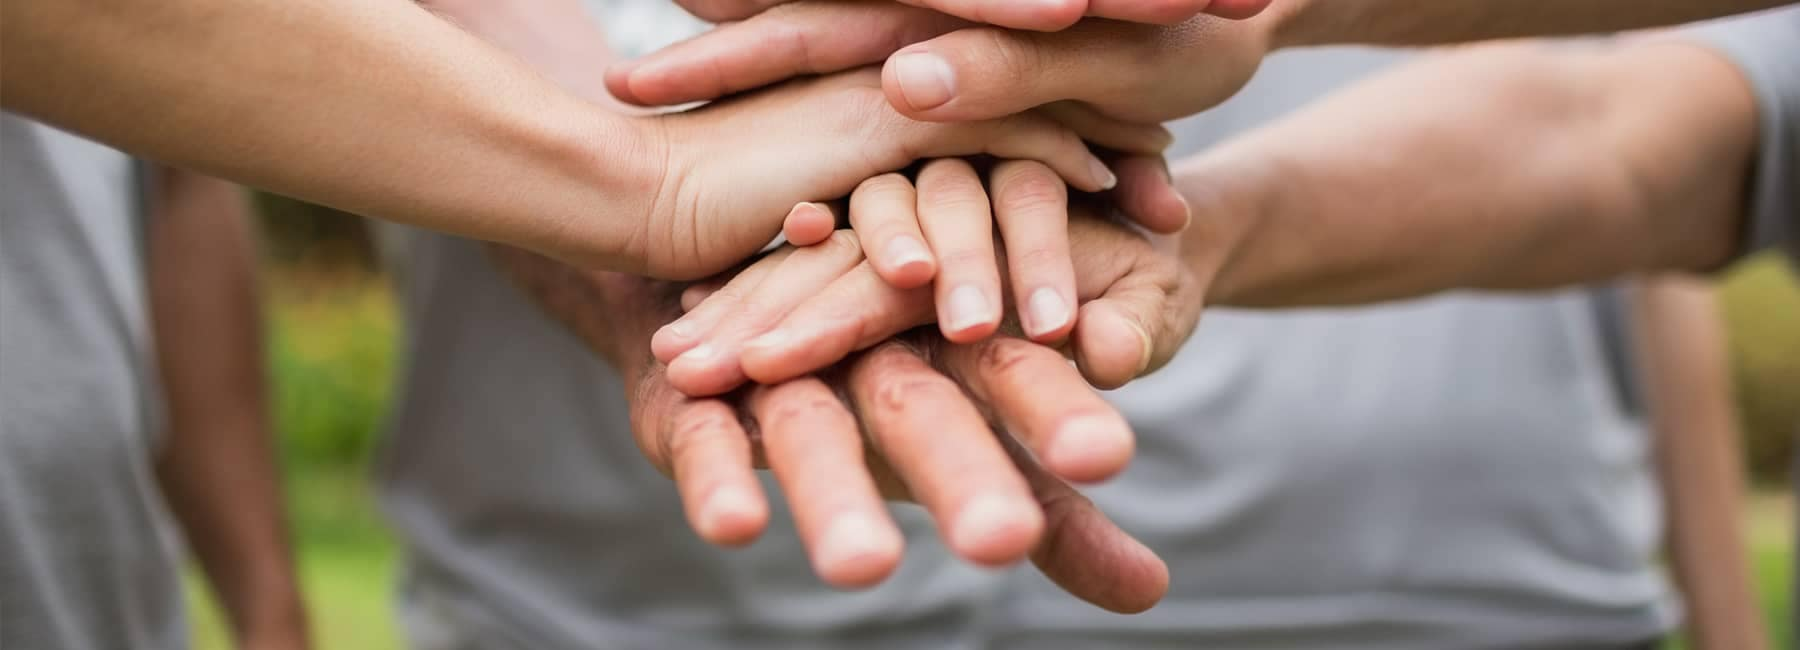 Close Up of Hands on Top of Other Hands